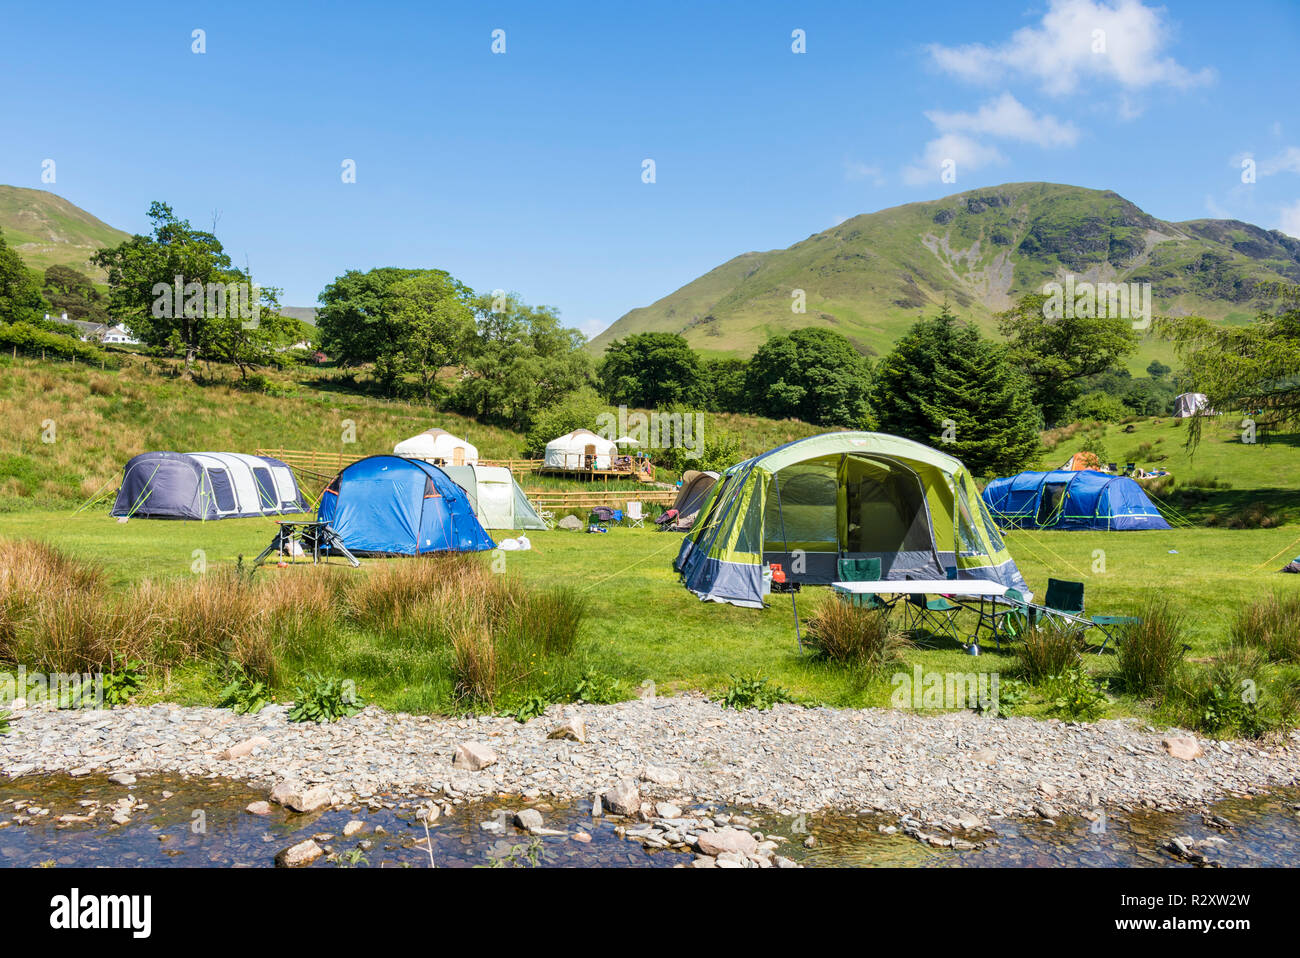 Lake District UK Buttermere Lake District National Park persone campeggio a Syke Agriturismo Campeggio Buttermere Cumbria Inghilterra UK GB Europa Immagini Stock